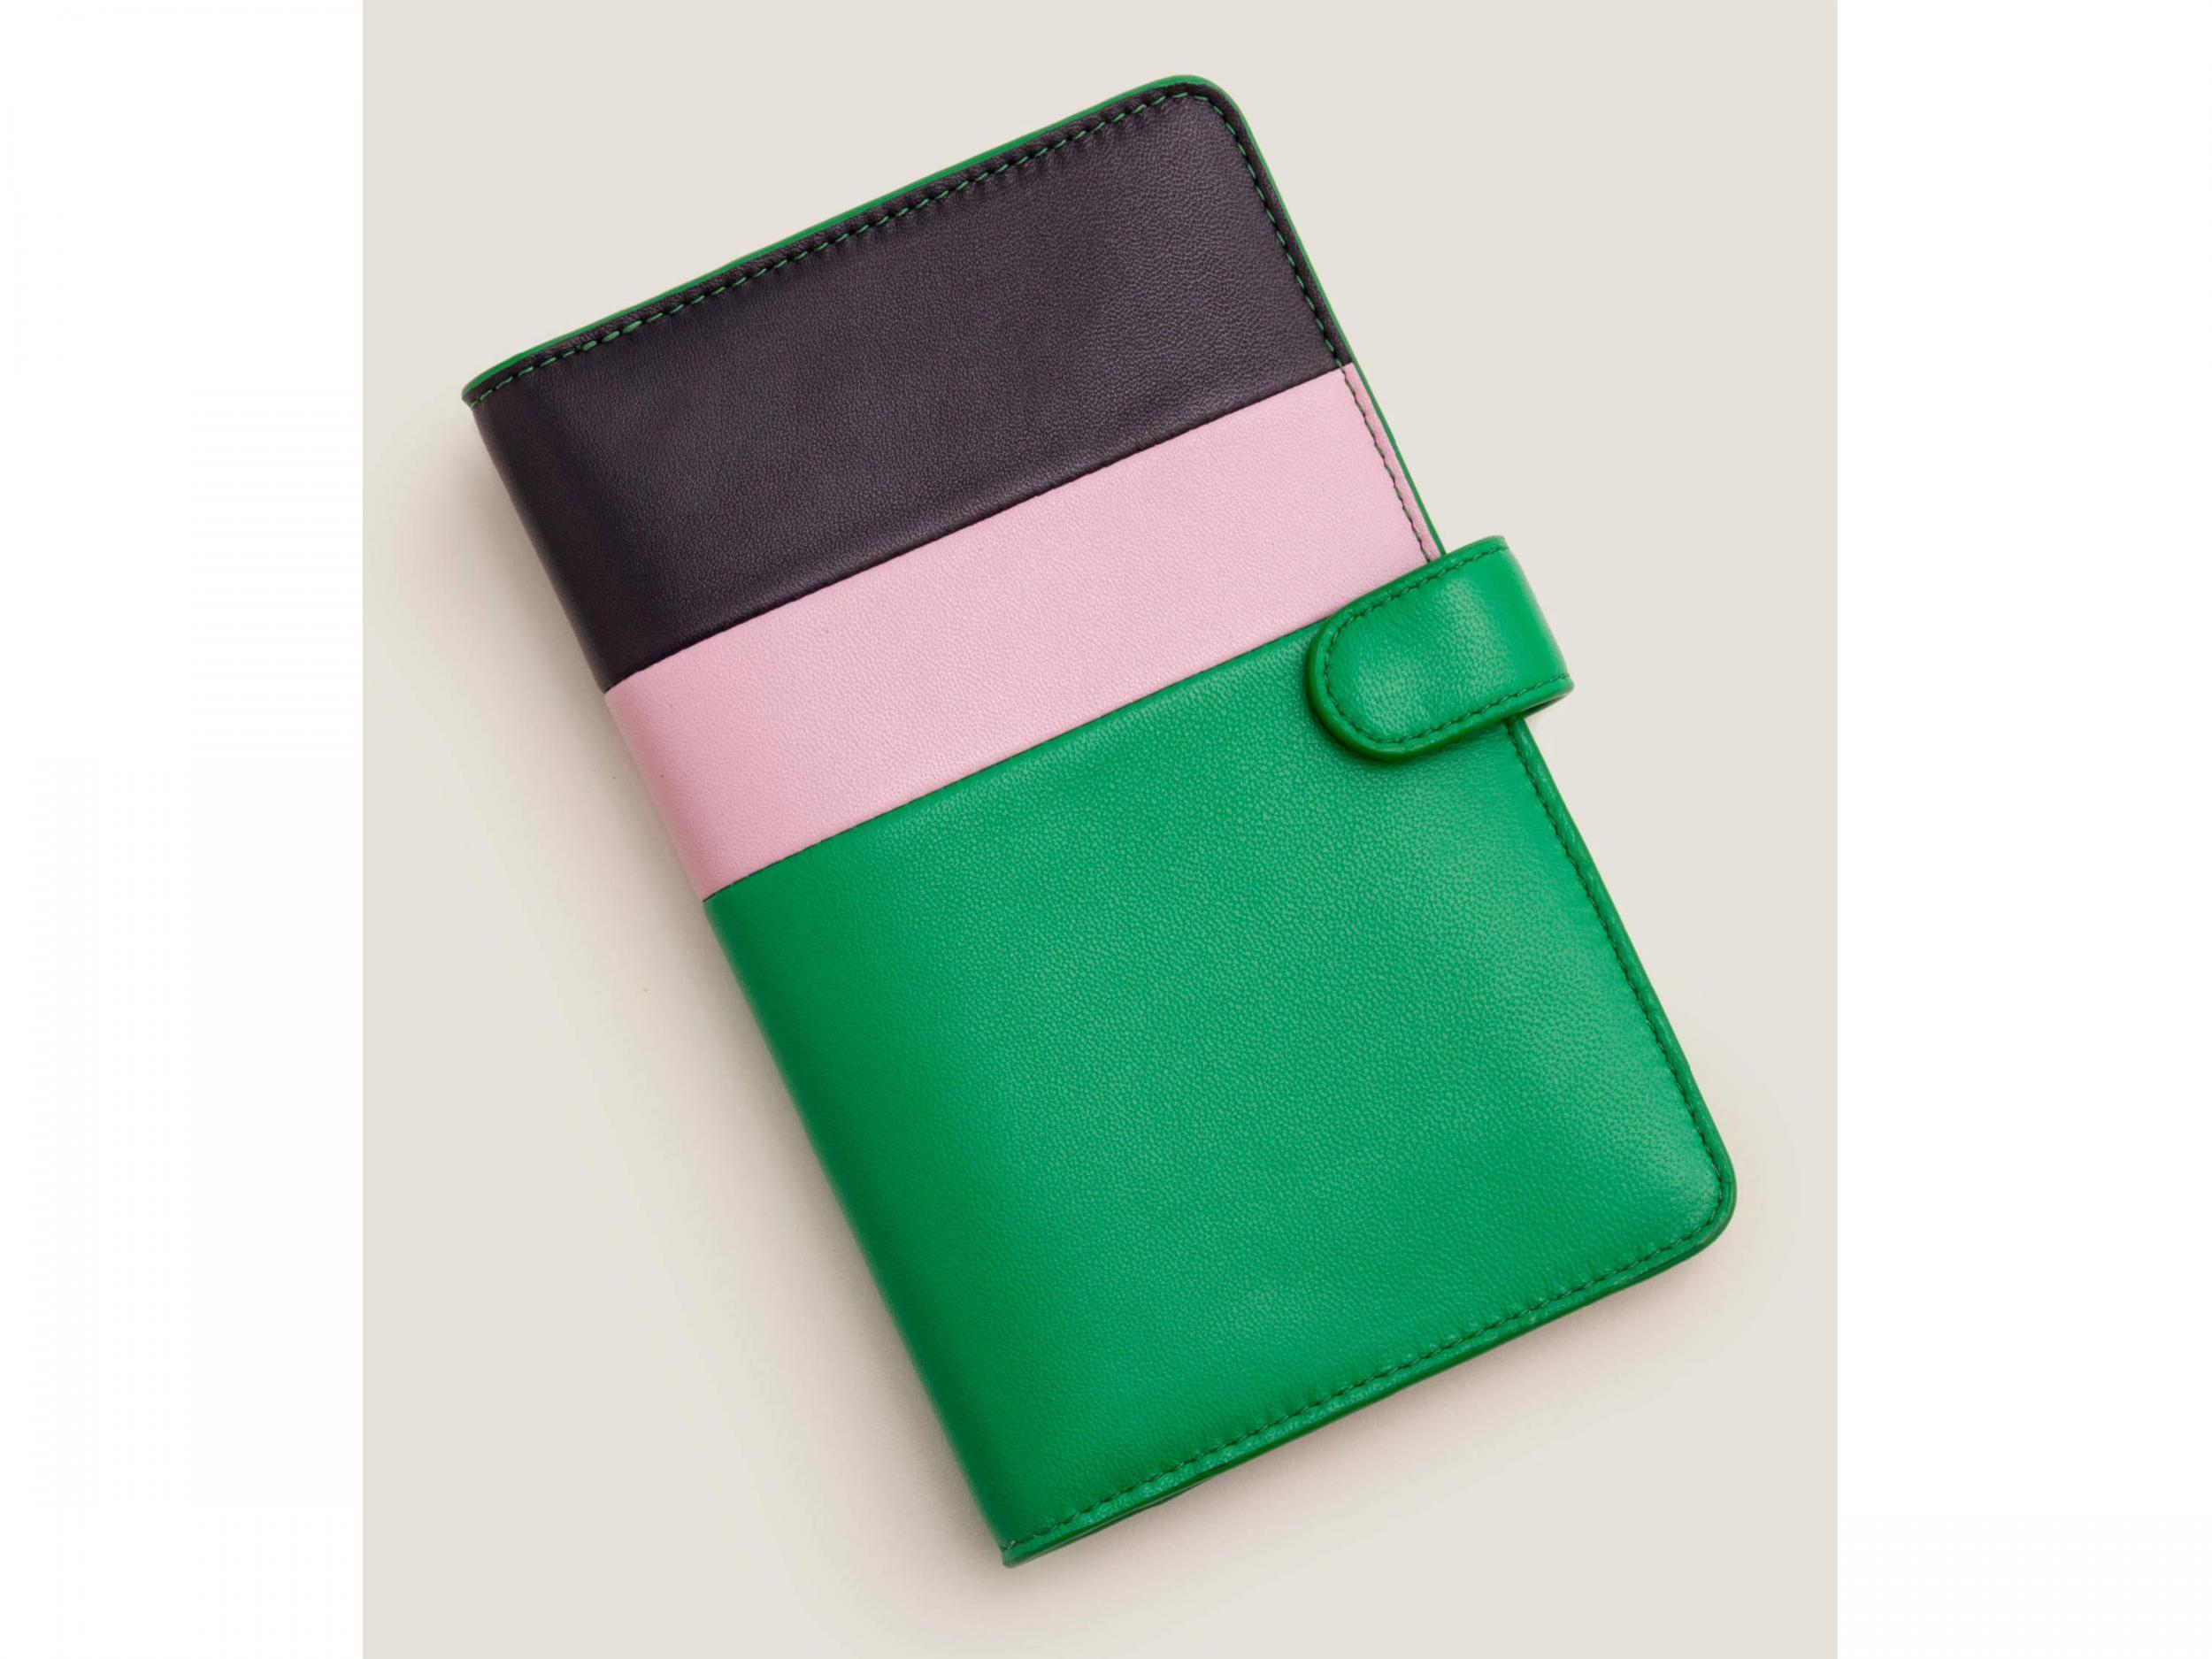 Leading Christmas Walking Around Leather Passport Wallet for Passport Holder for Safe Trip durable Easy to Carry